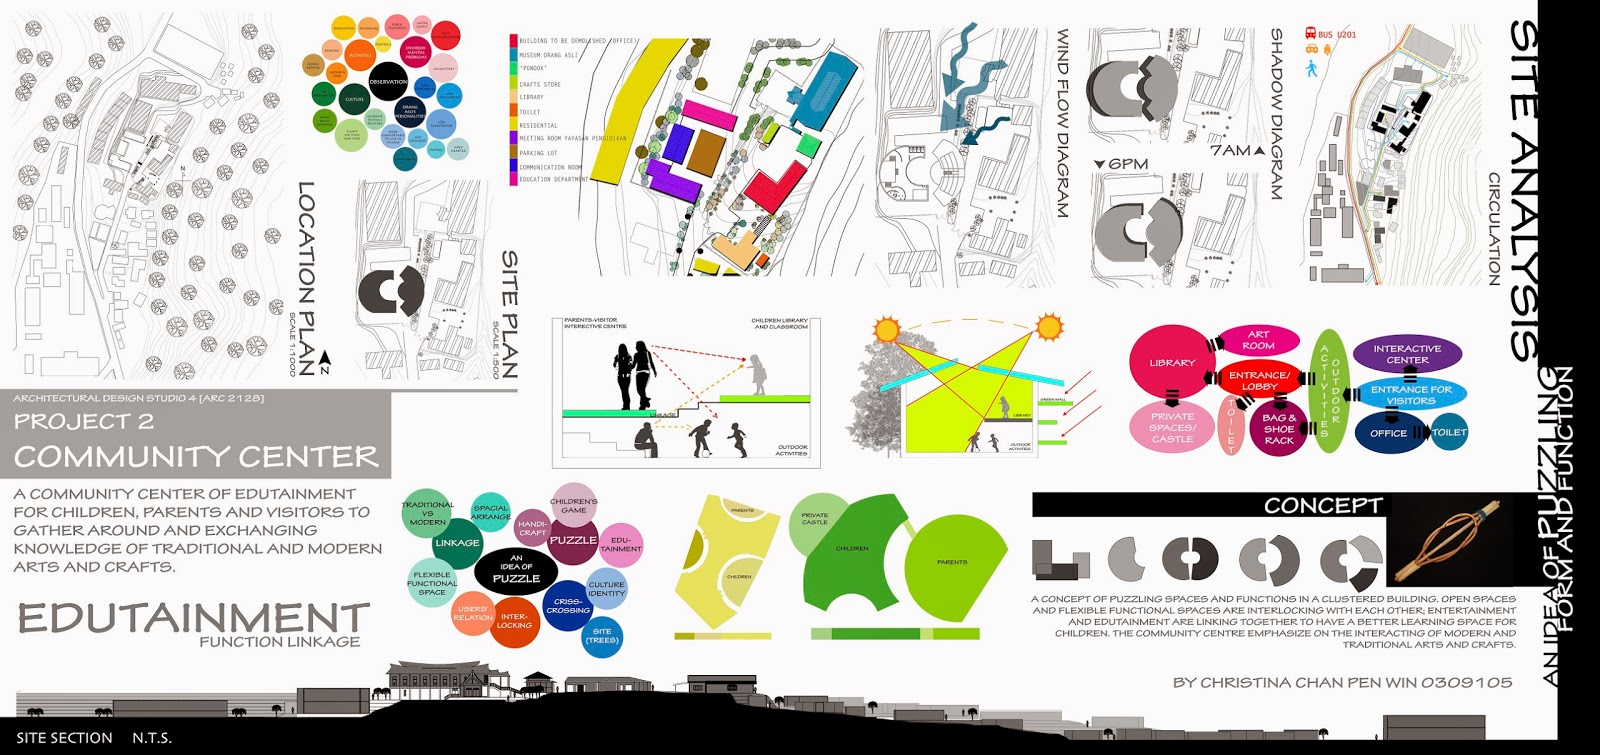 Design Architecture Portfolio Design Studio 4 Project 2 Community Center